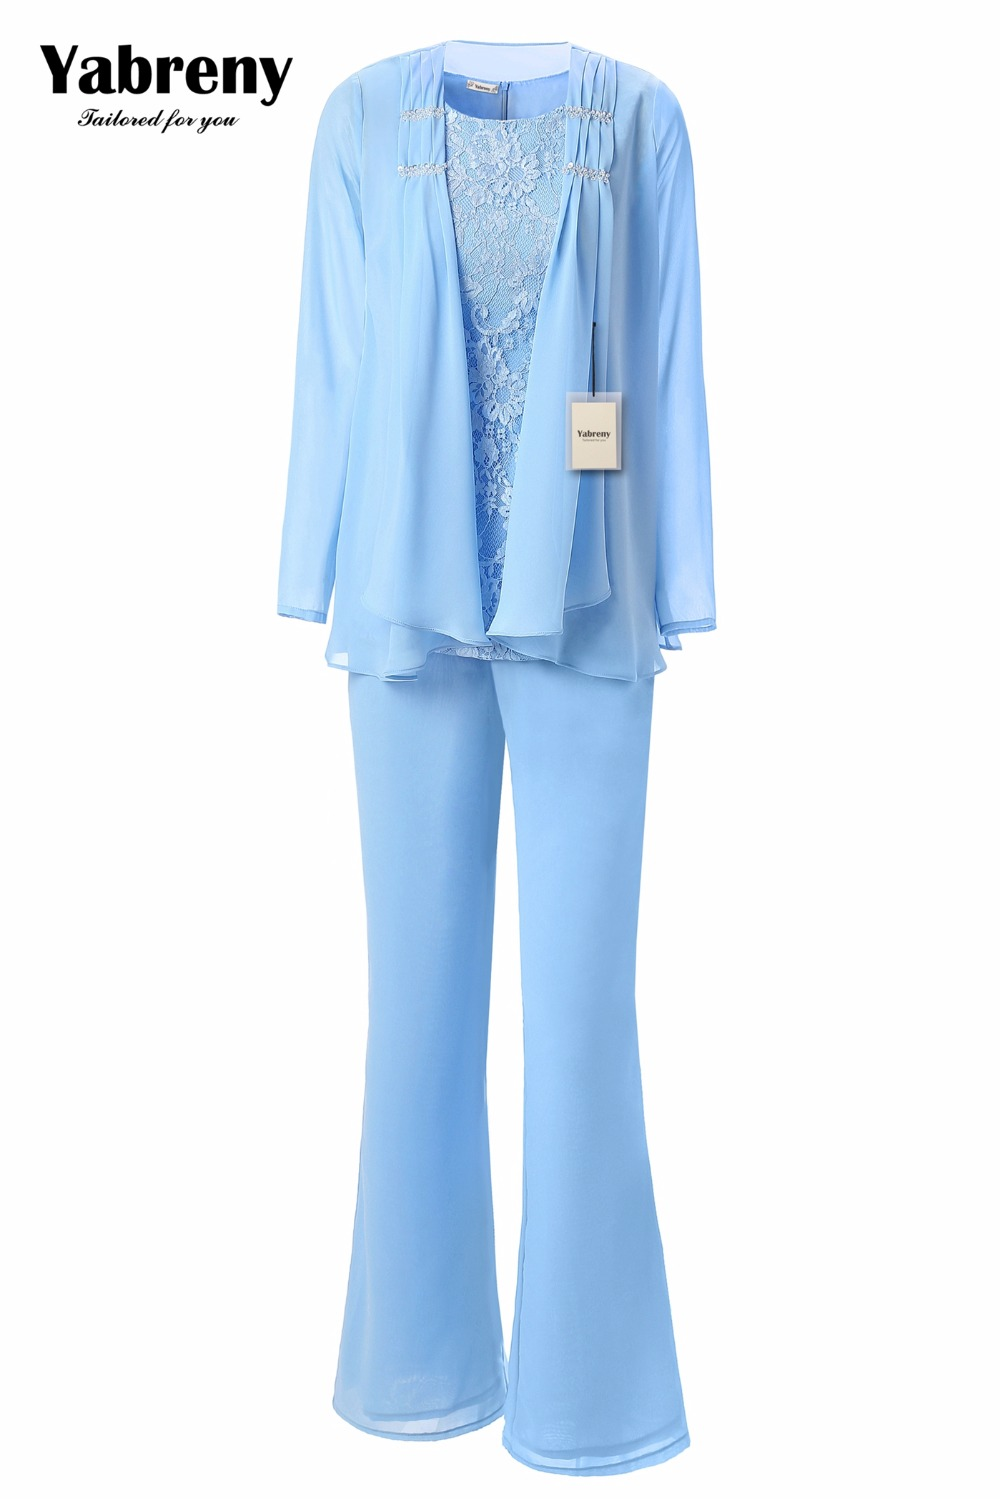 Image 2 - Yabreny Elegant Mother of the Bride Pants suit Lavender Chiffon Outfit for Special occasion MT001704 2-in Mother of the Bride Dresses from Weddings & Events